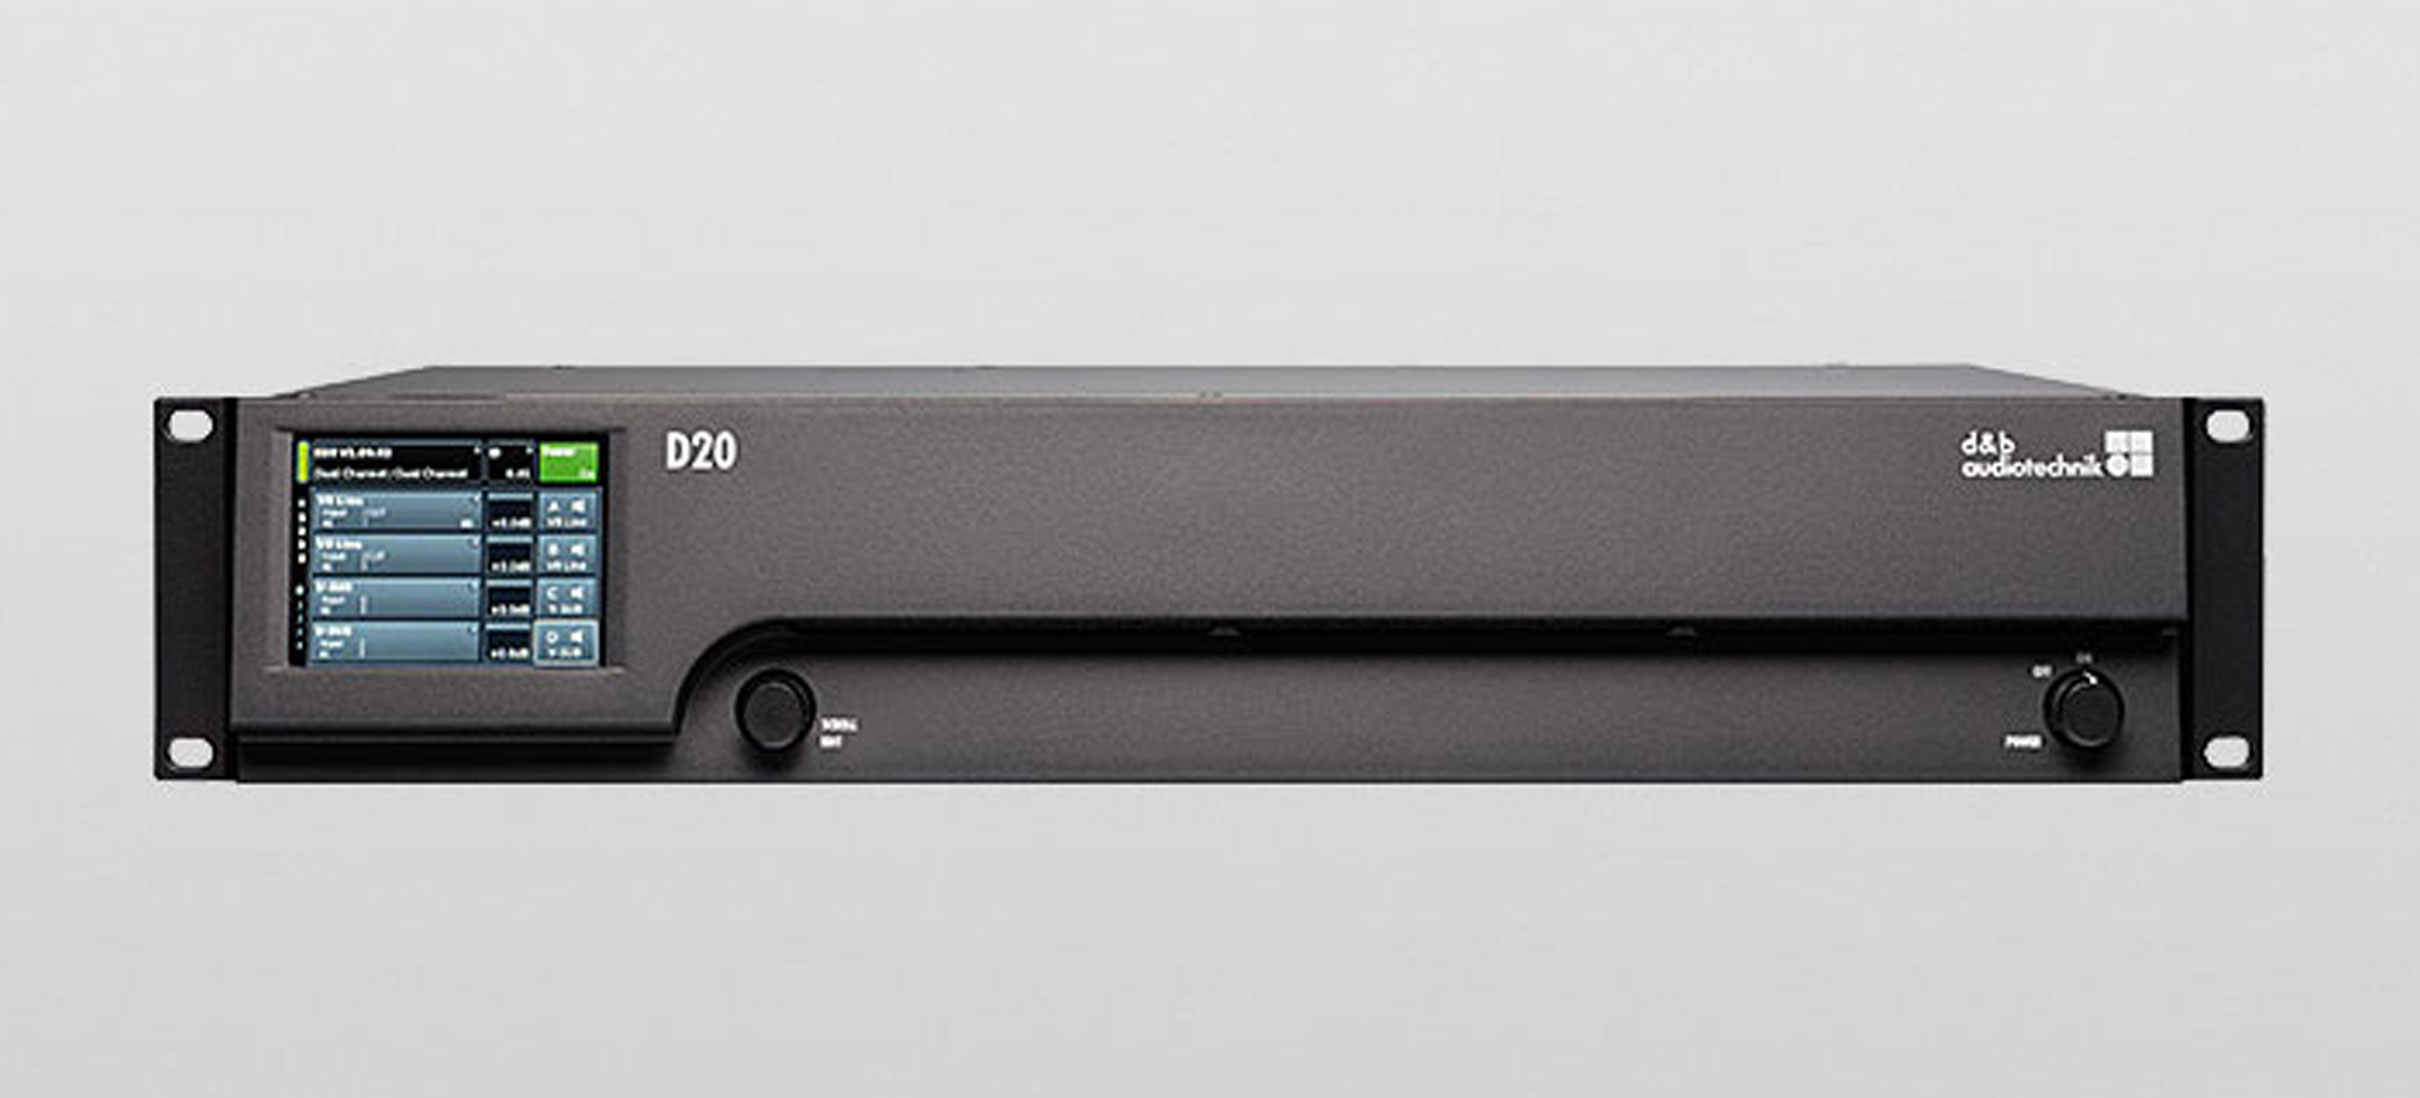 New Product Launch: The D20 Amplifier from d&b audiotechnik